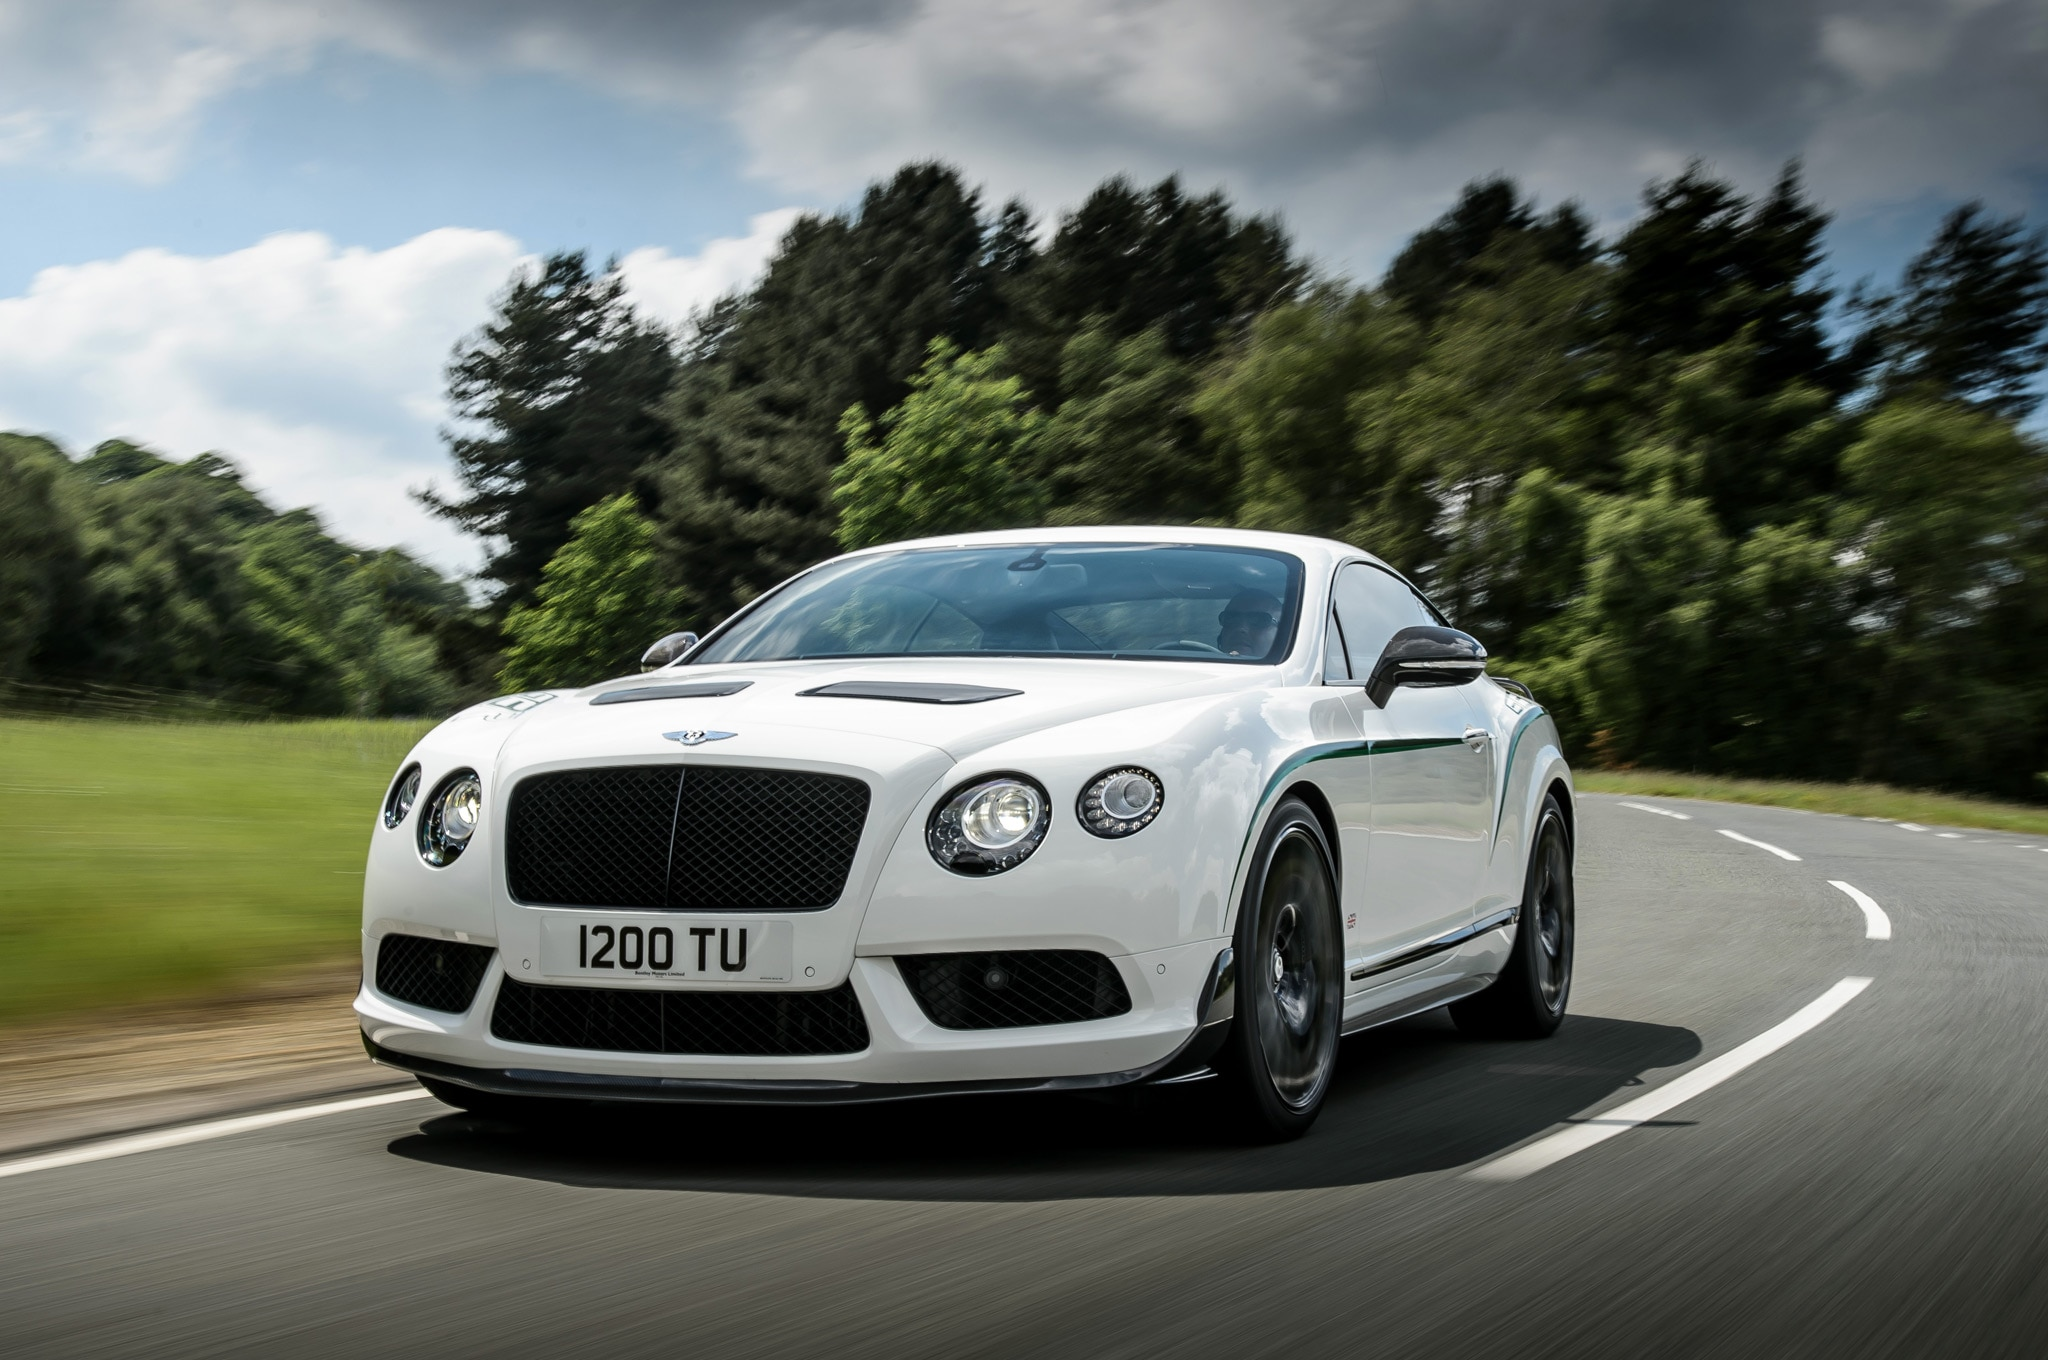 2015 Bentley Continental GT3 R Front Three Quarter View